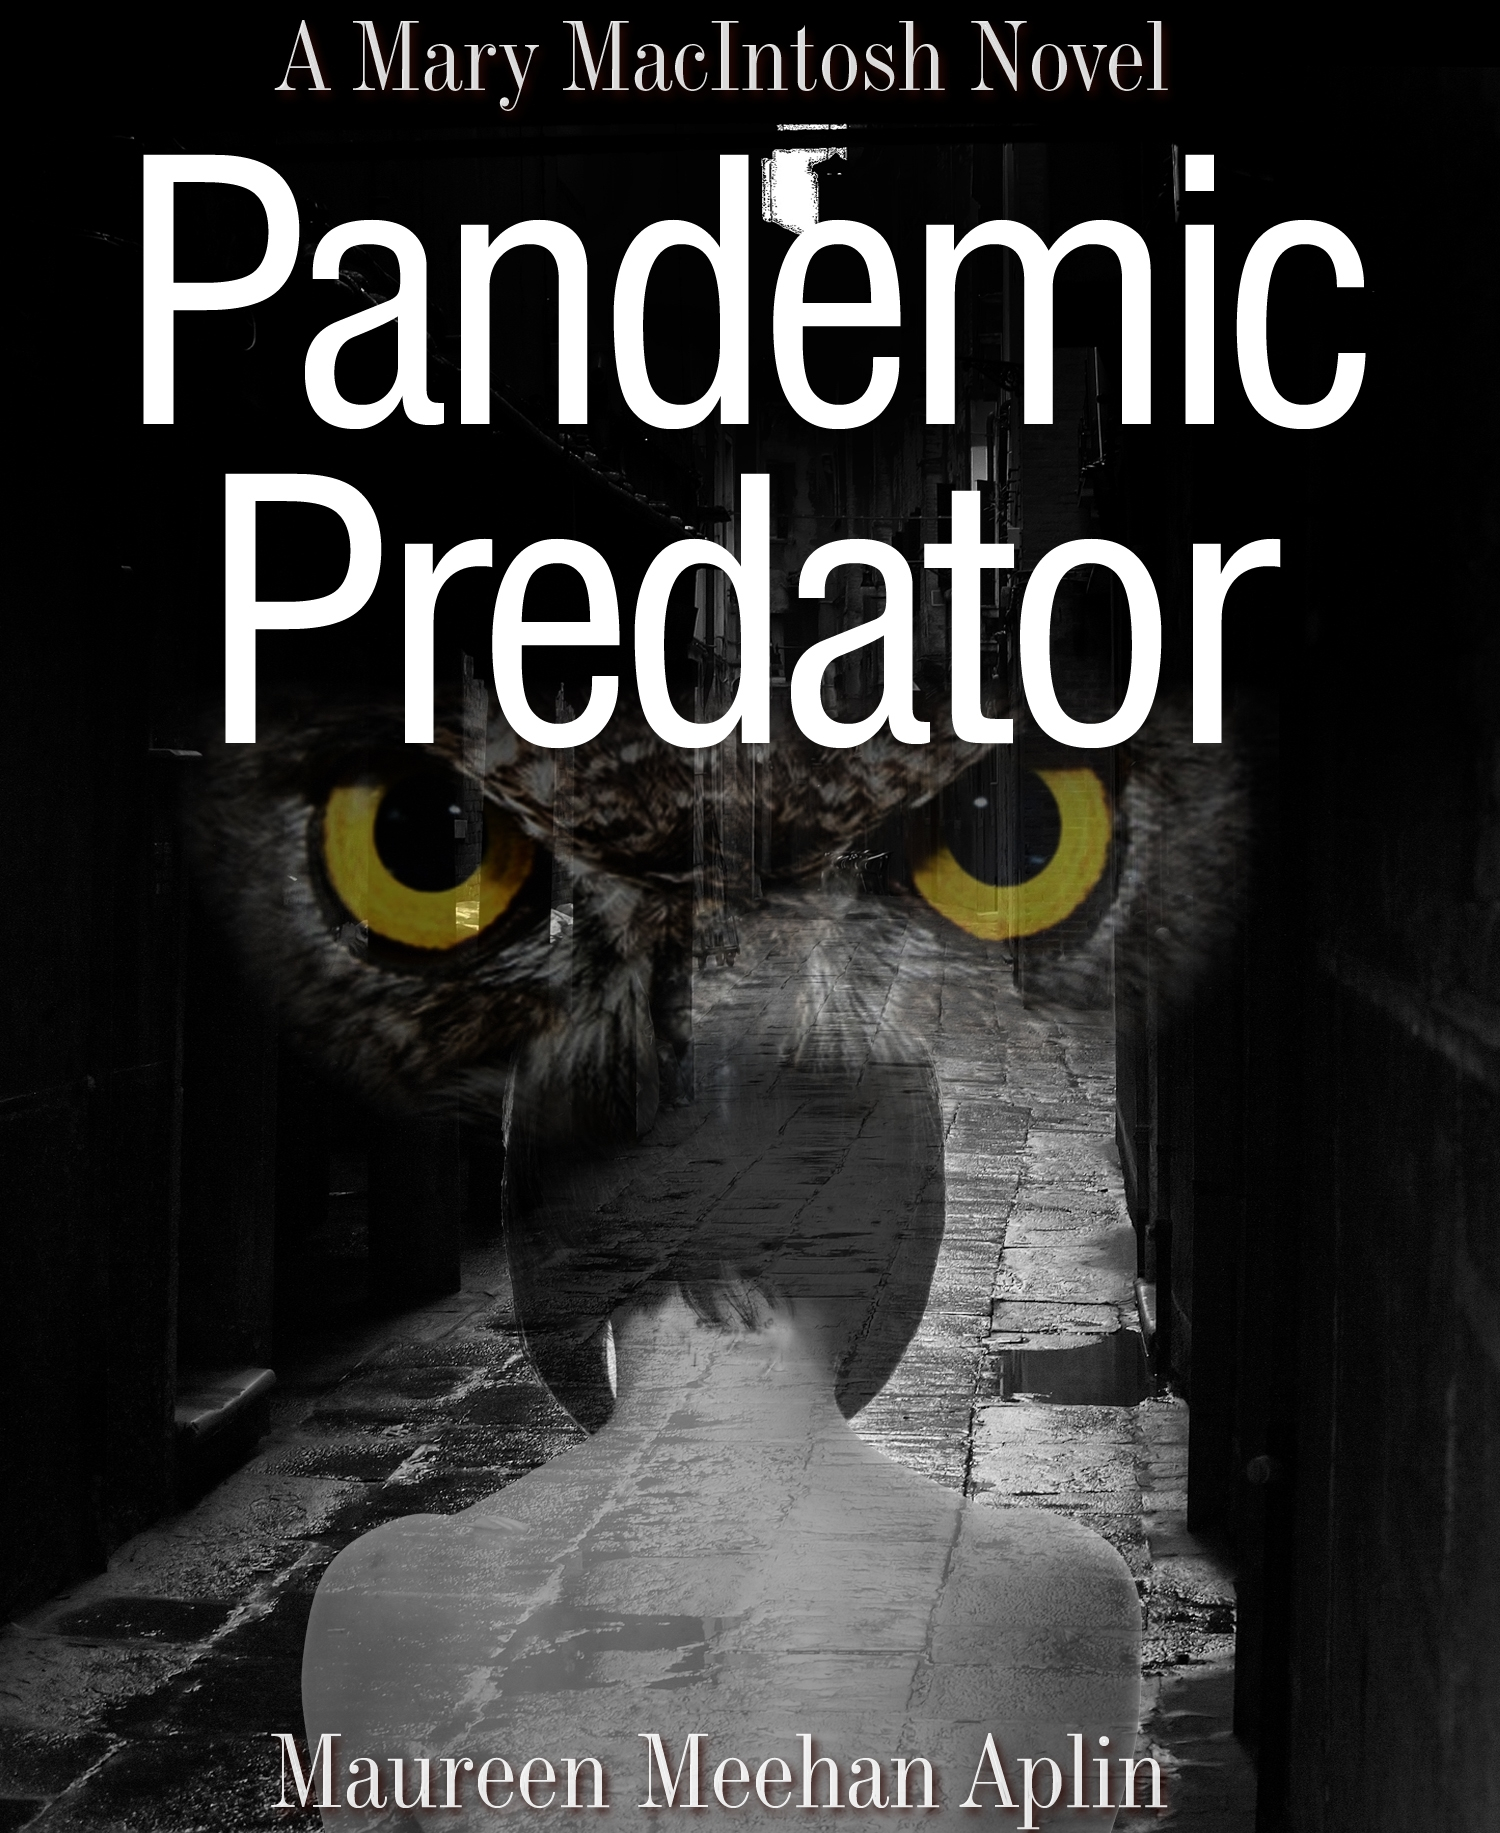 Pandemic Predator, a Mary MacIntosh novel